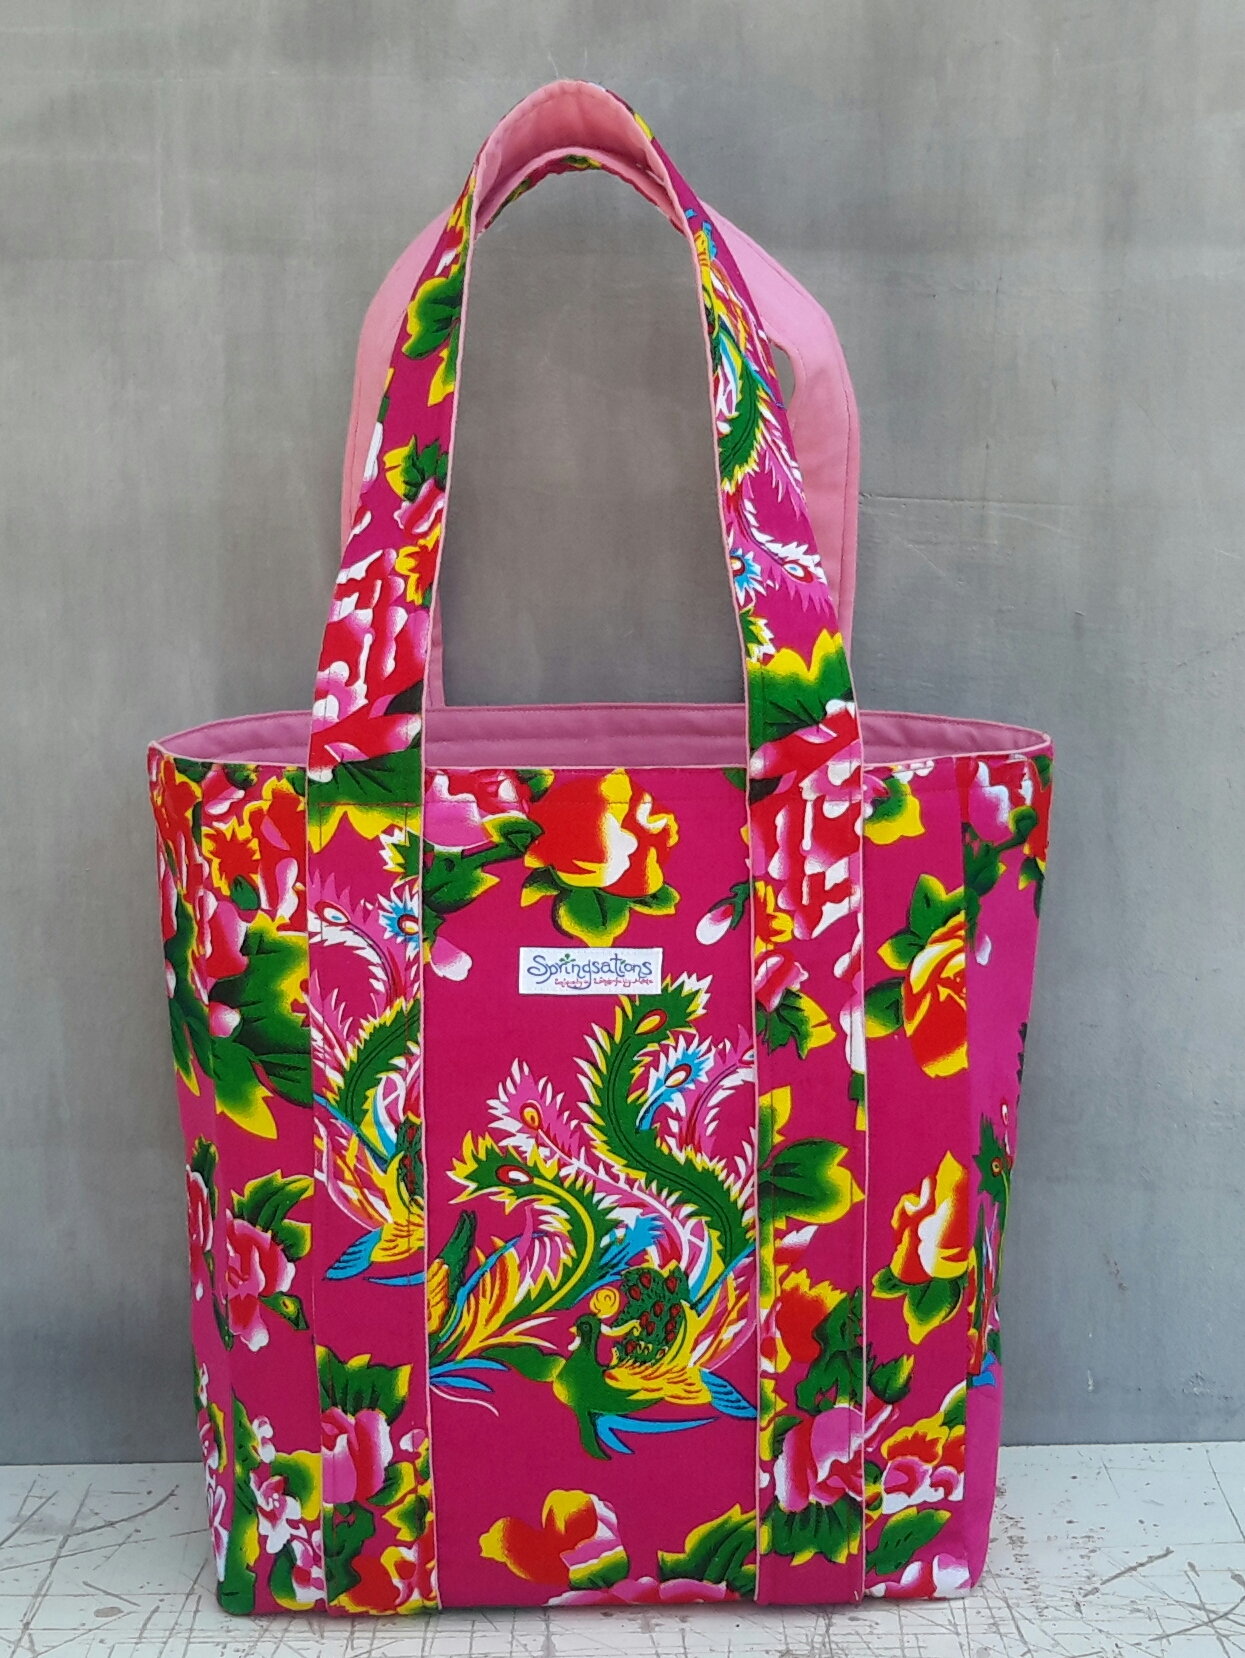 The Airplane Tote in Fuchsia with Pink Lining